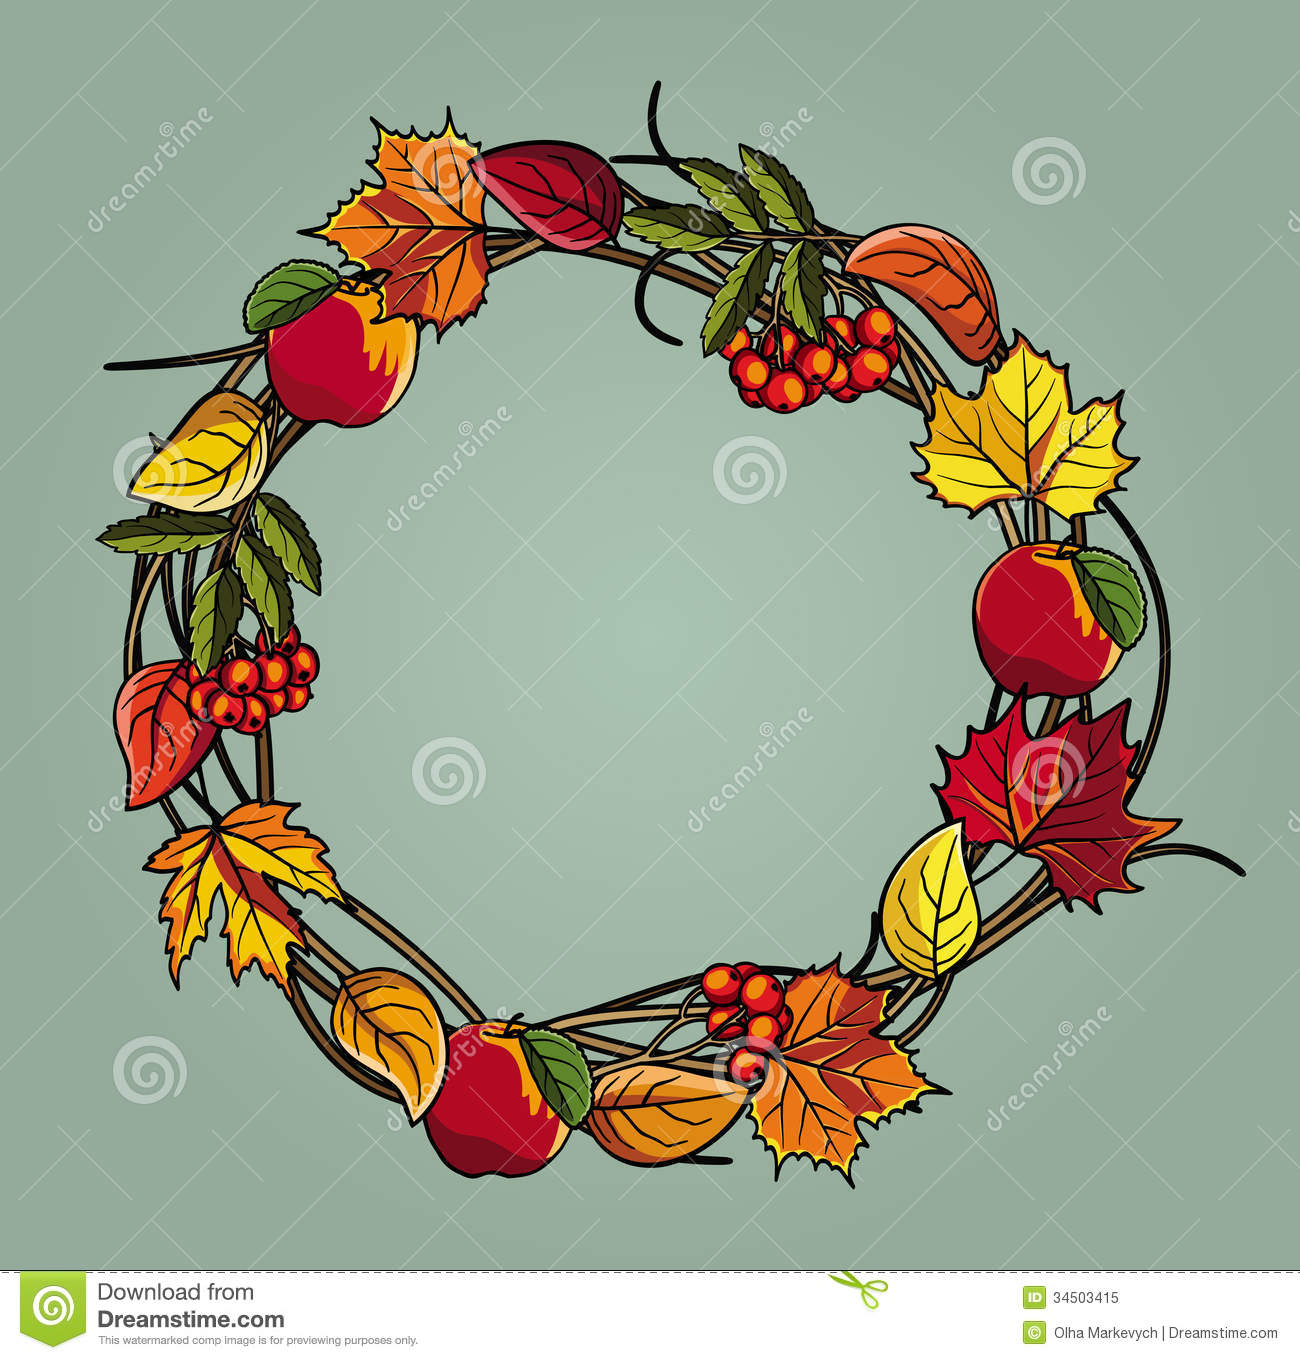 Displaying 18 gt images for fall wreath clipart